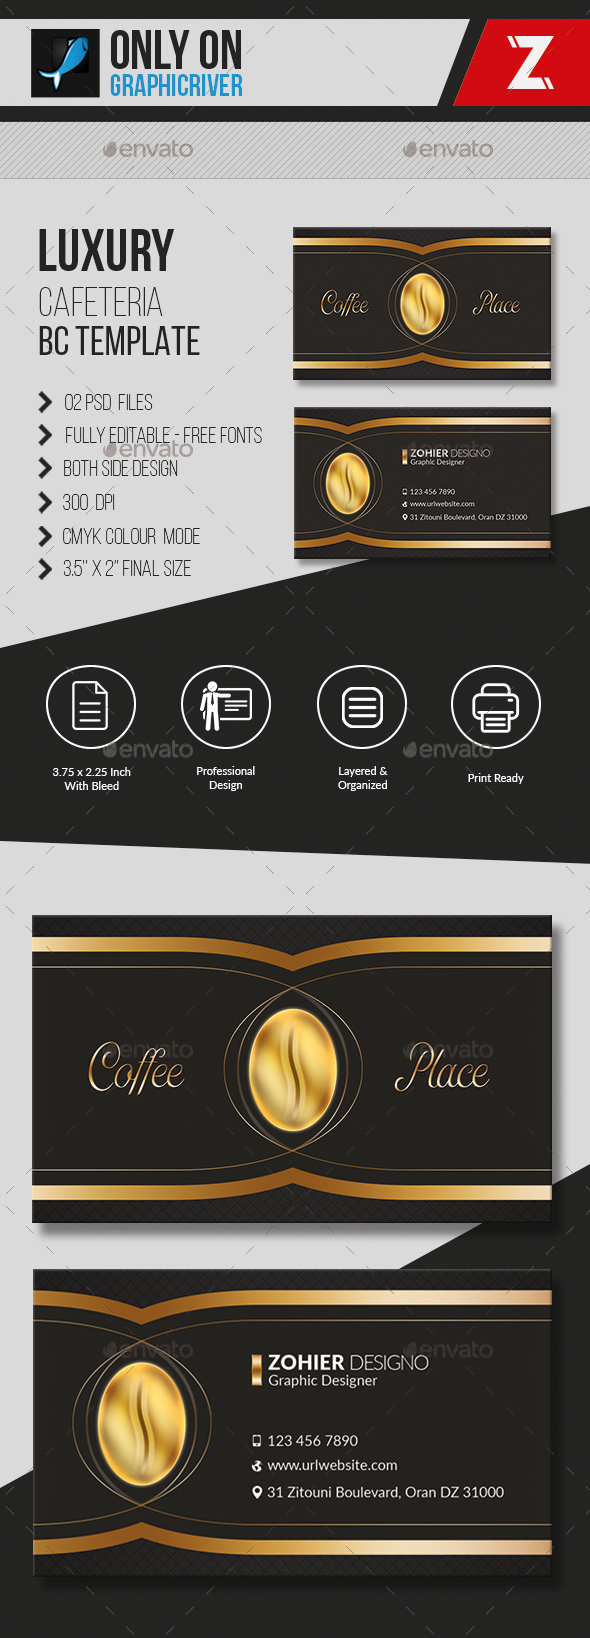 Luxury Cafeteria Business Card Template By Zohieralgerie On - 35 x2 business card template